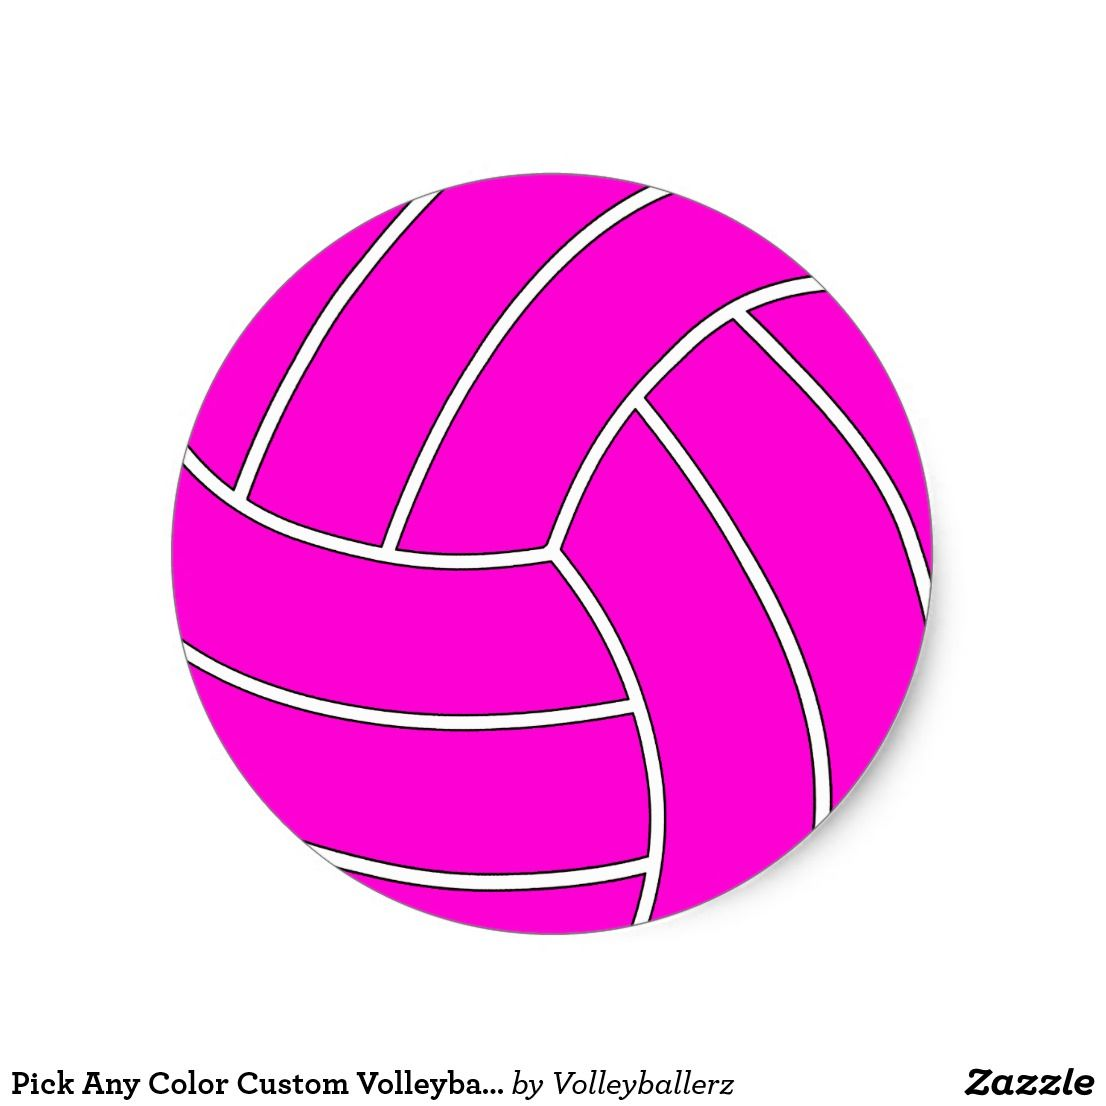 Regail Official Size 5 Weight Volleyball Outdoor Indoor Training Competition Handball Pink 2y89279612 Handball Volleyball Beach Volleyball Game